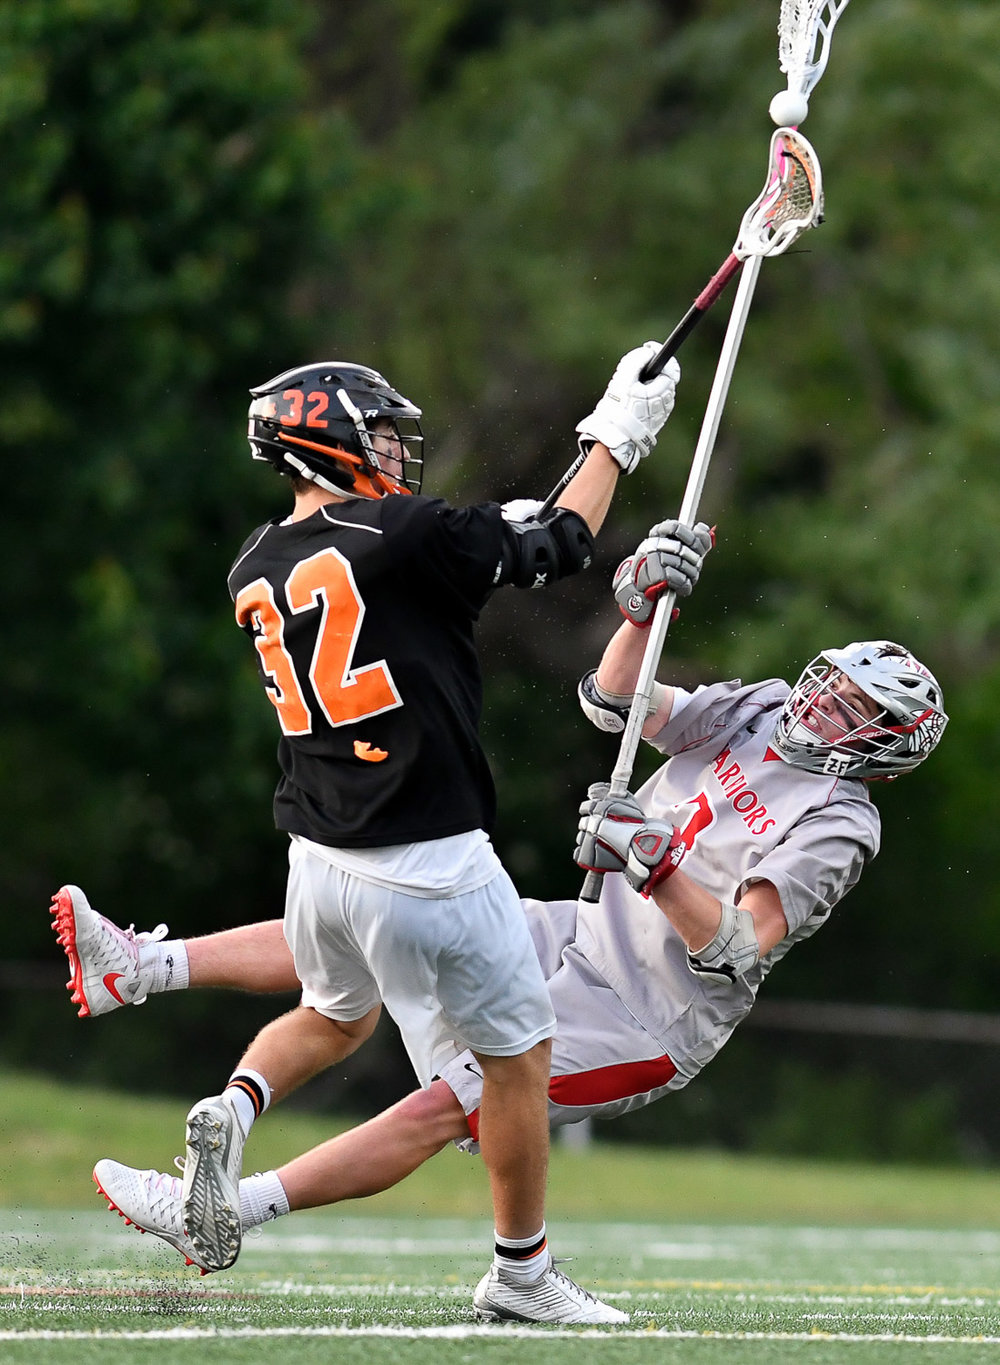 Nikon D500, 1/2000 @ f/2.8, ISO 1250, 300mm  Ryan Fitzpatrick of Wakefield gets checked by Tom Adams of Beverly during their Division 2 North championship game loss, 7-6, at Concord Carlisle High School, Saturday, June 10, 2017. [Wicked Local Staff Photo / David Sokol]